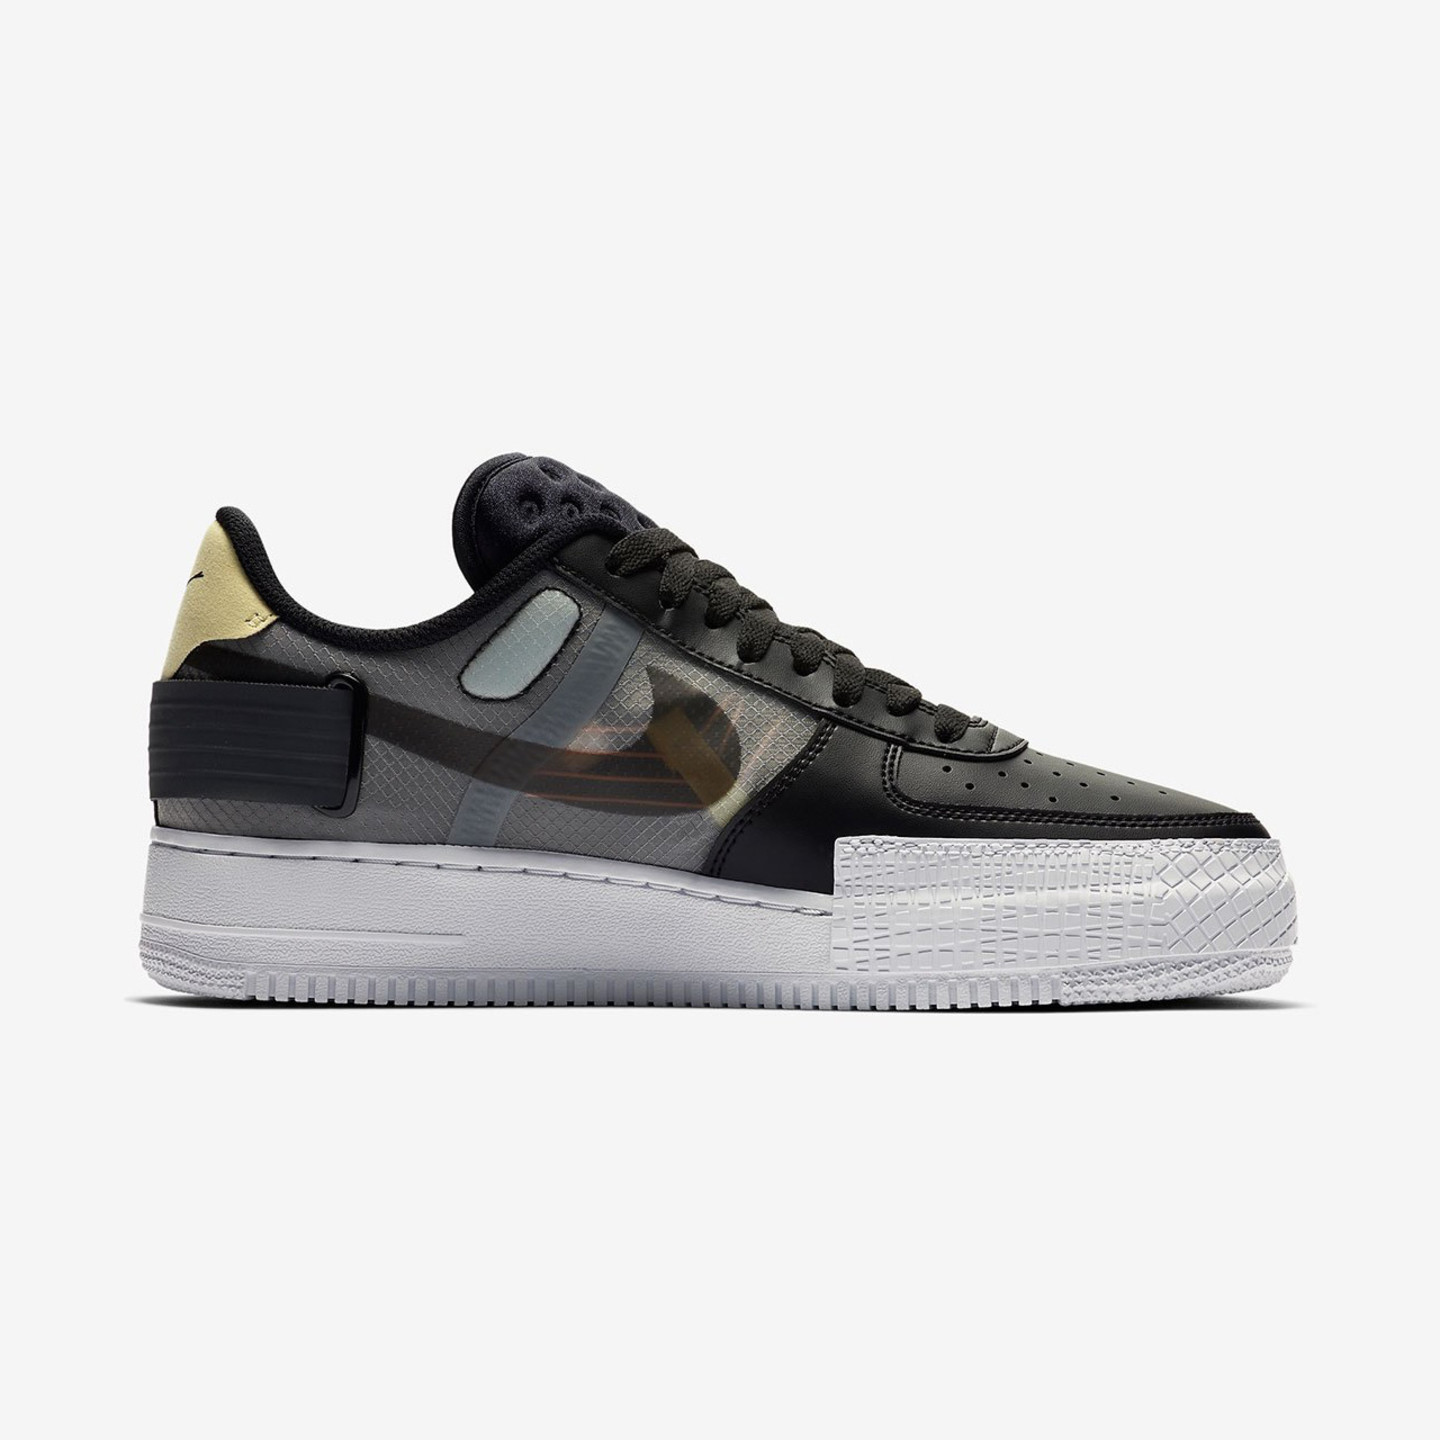 Nike Air Force 1 Low Type N.354 Black / Anthracite / Zinnia / Pink / Tint CI0054-001